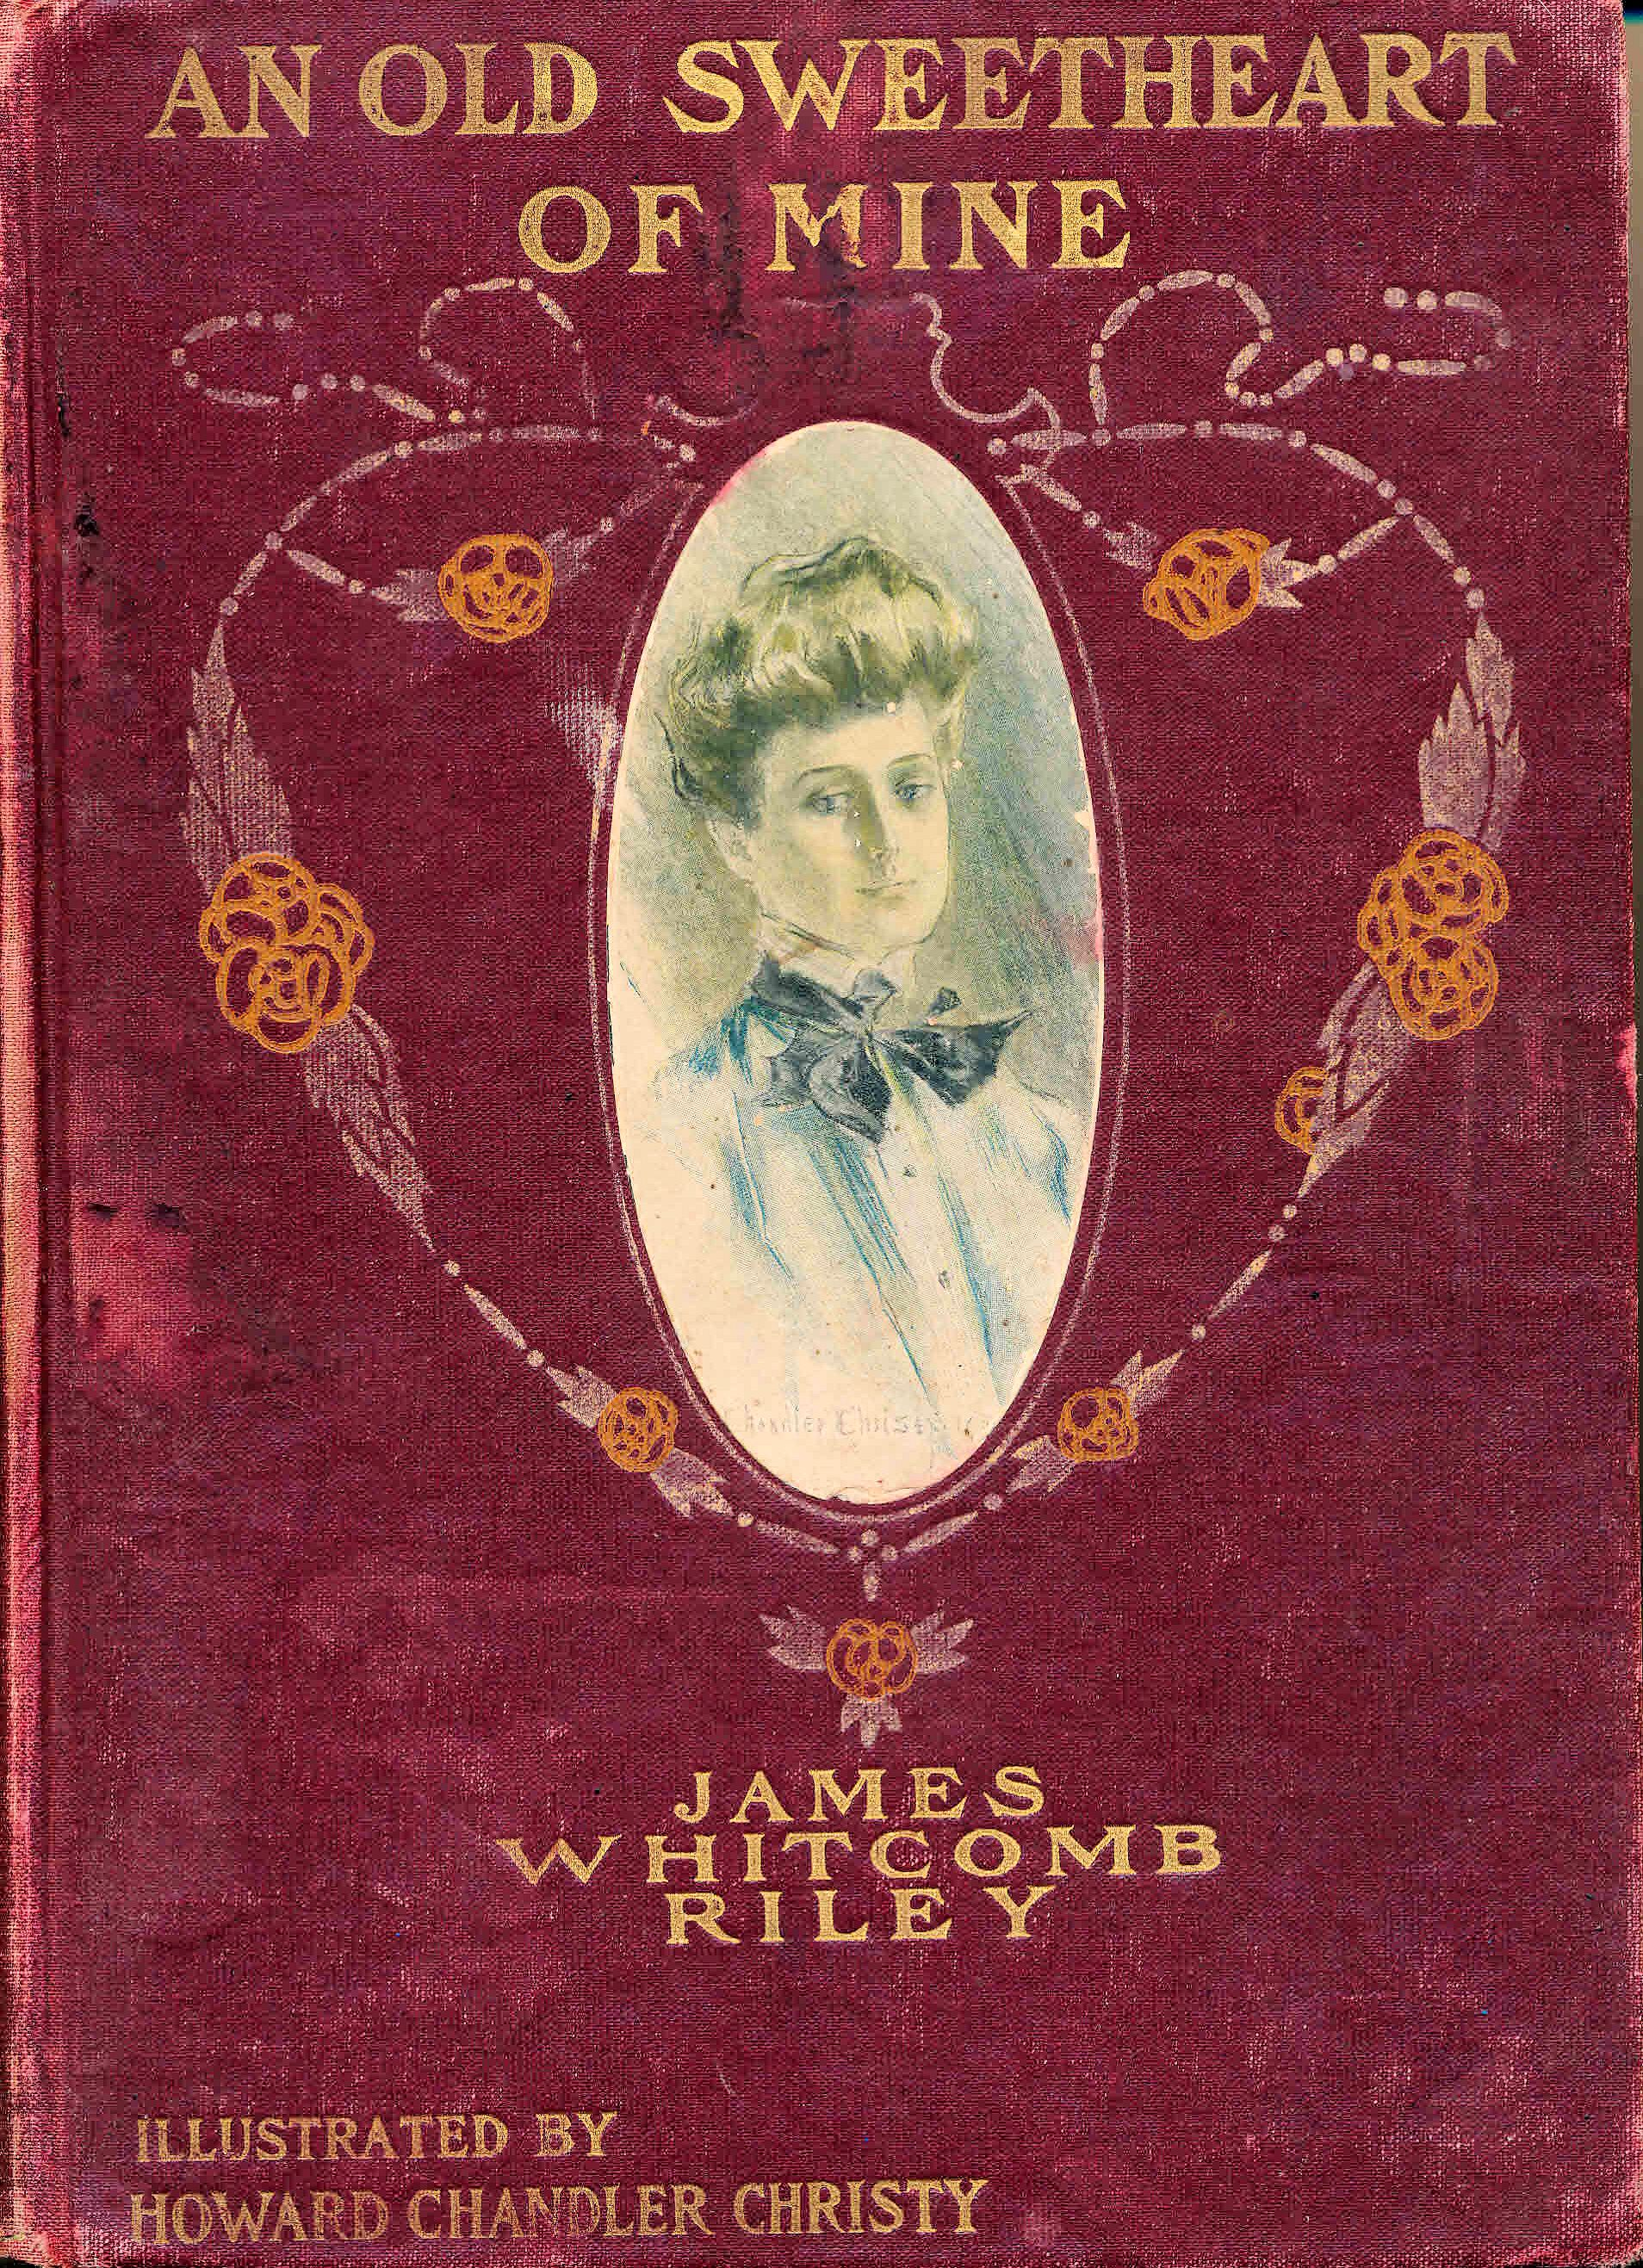 An Old Sweetheart of Mine James Whitcomb Riley Illustrated Chandler 1902 17-2P